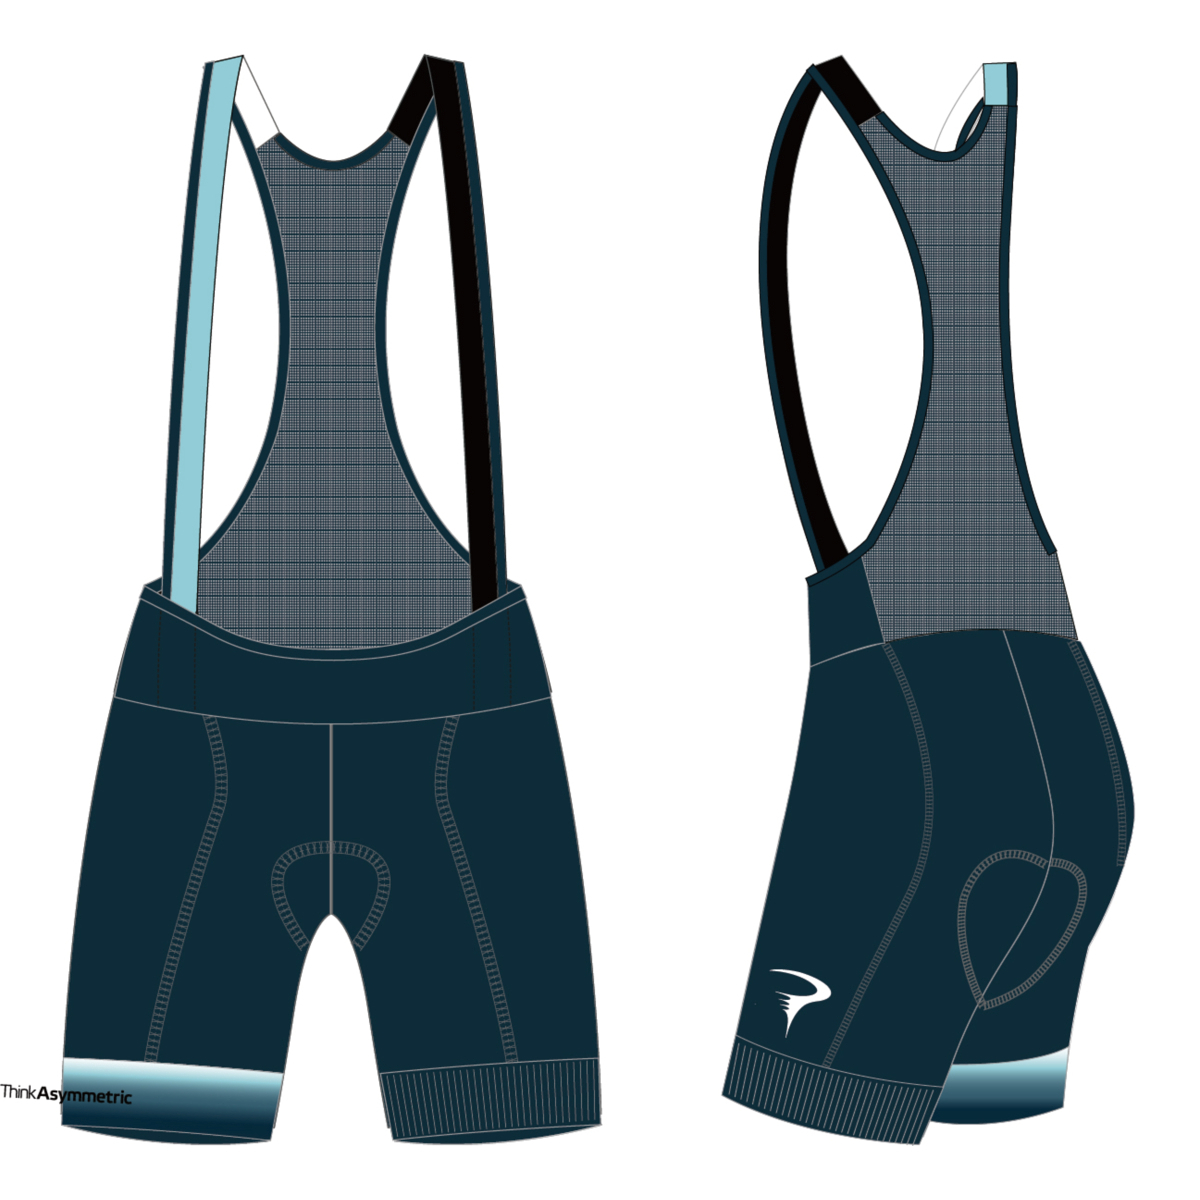 ピナレロ Cosmo W Bibshorts(Think Asymmetric)